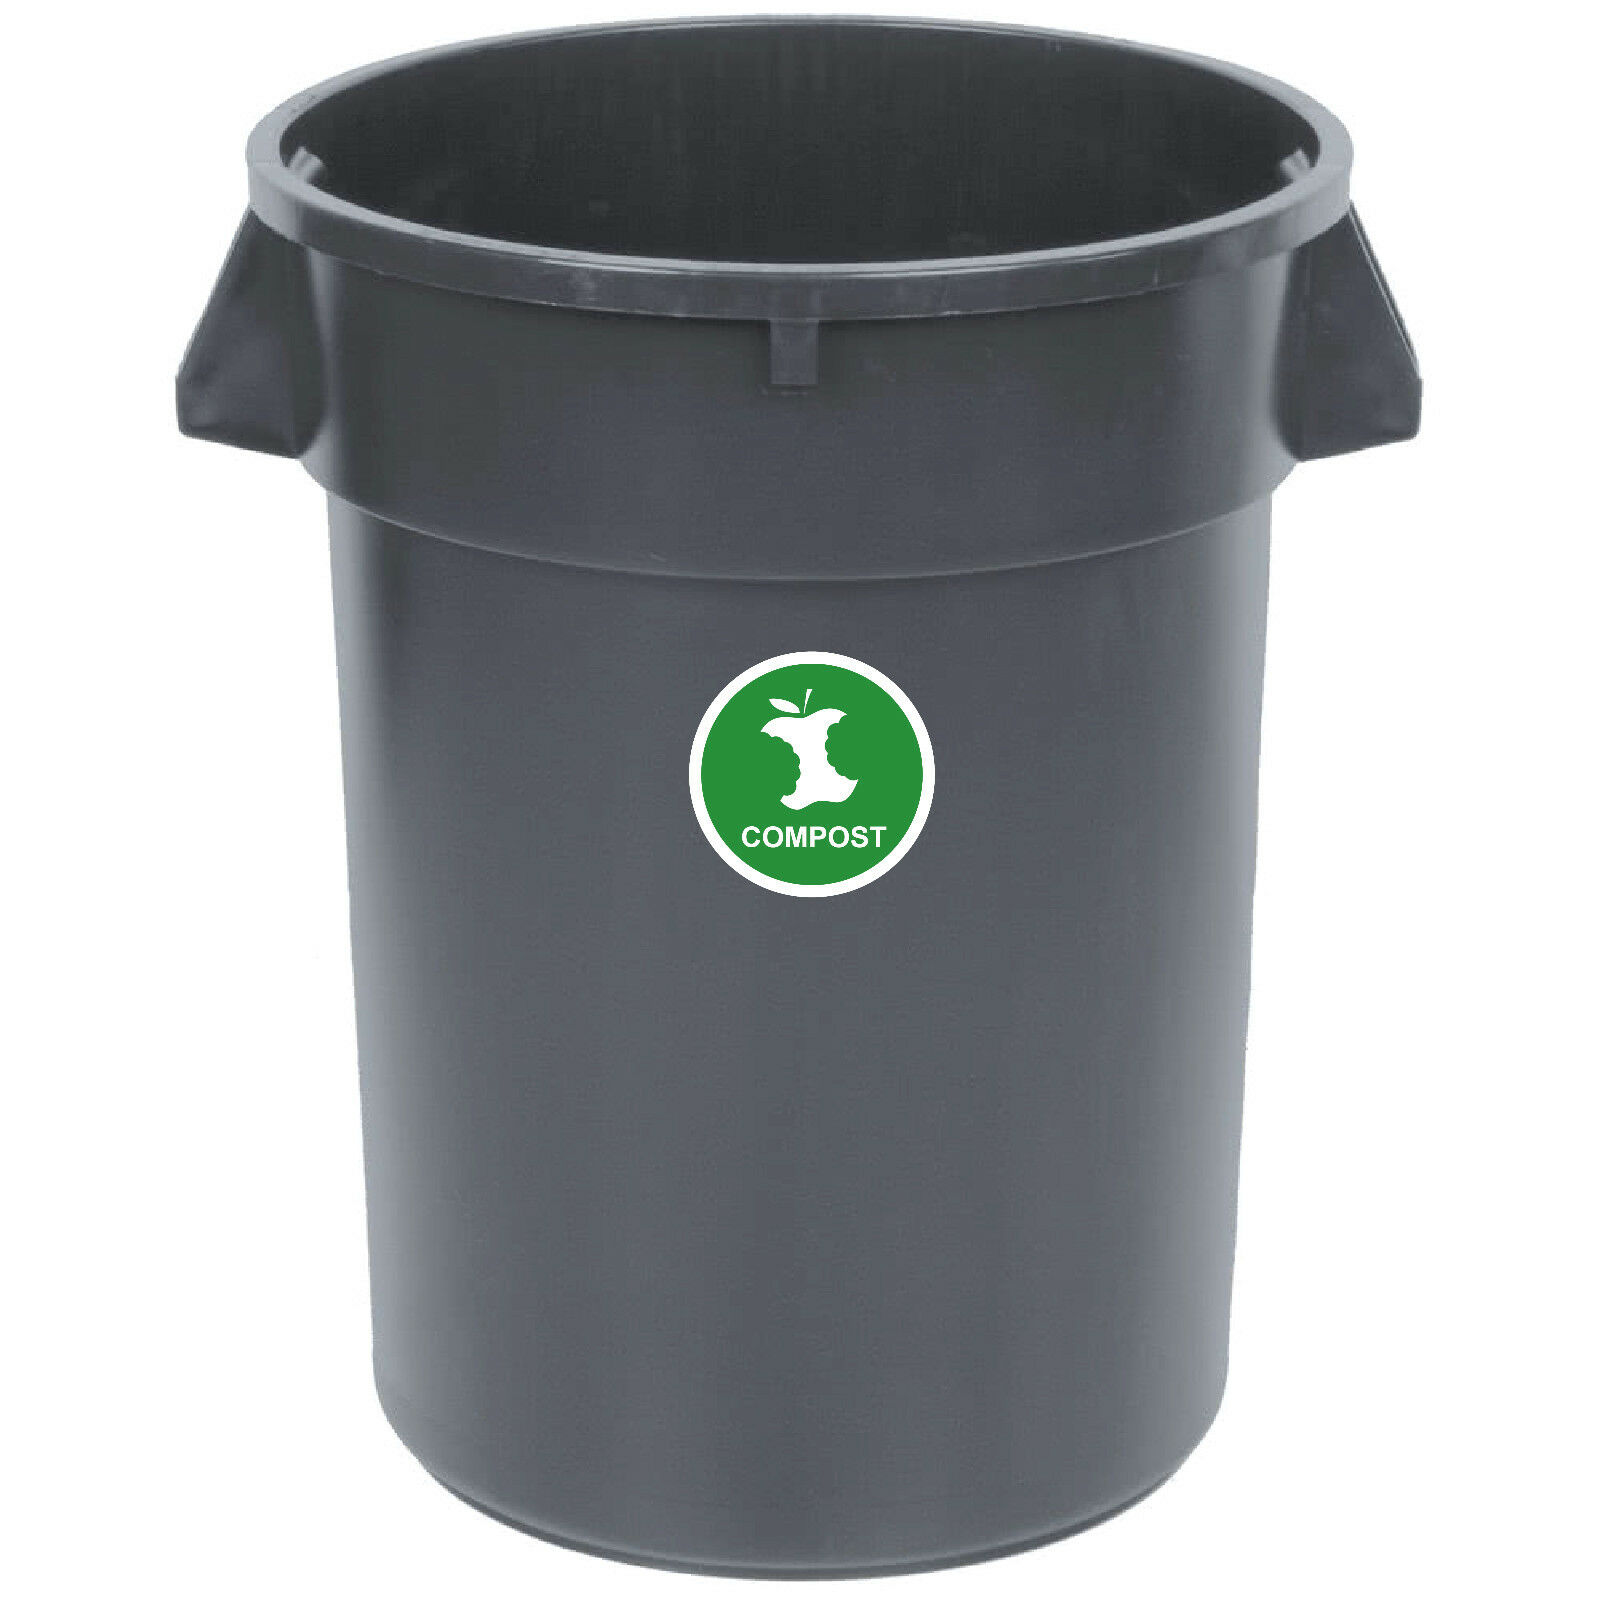 3 x 3, Black-White Yoonek Graphics Recycle and Trash Decal Sticker for Trash cans for Personal Home or Business use # 953